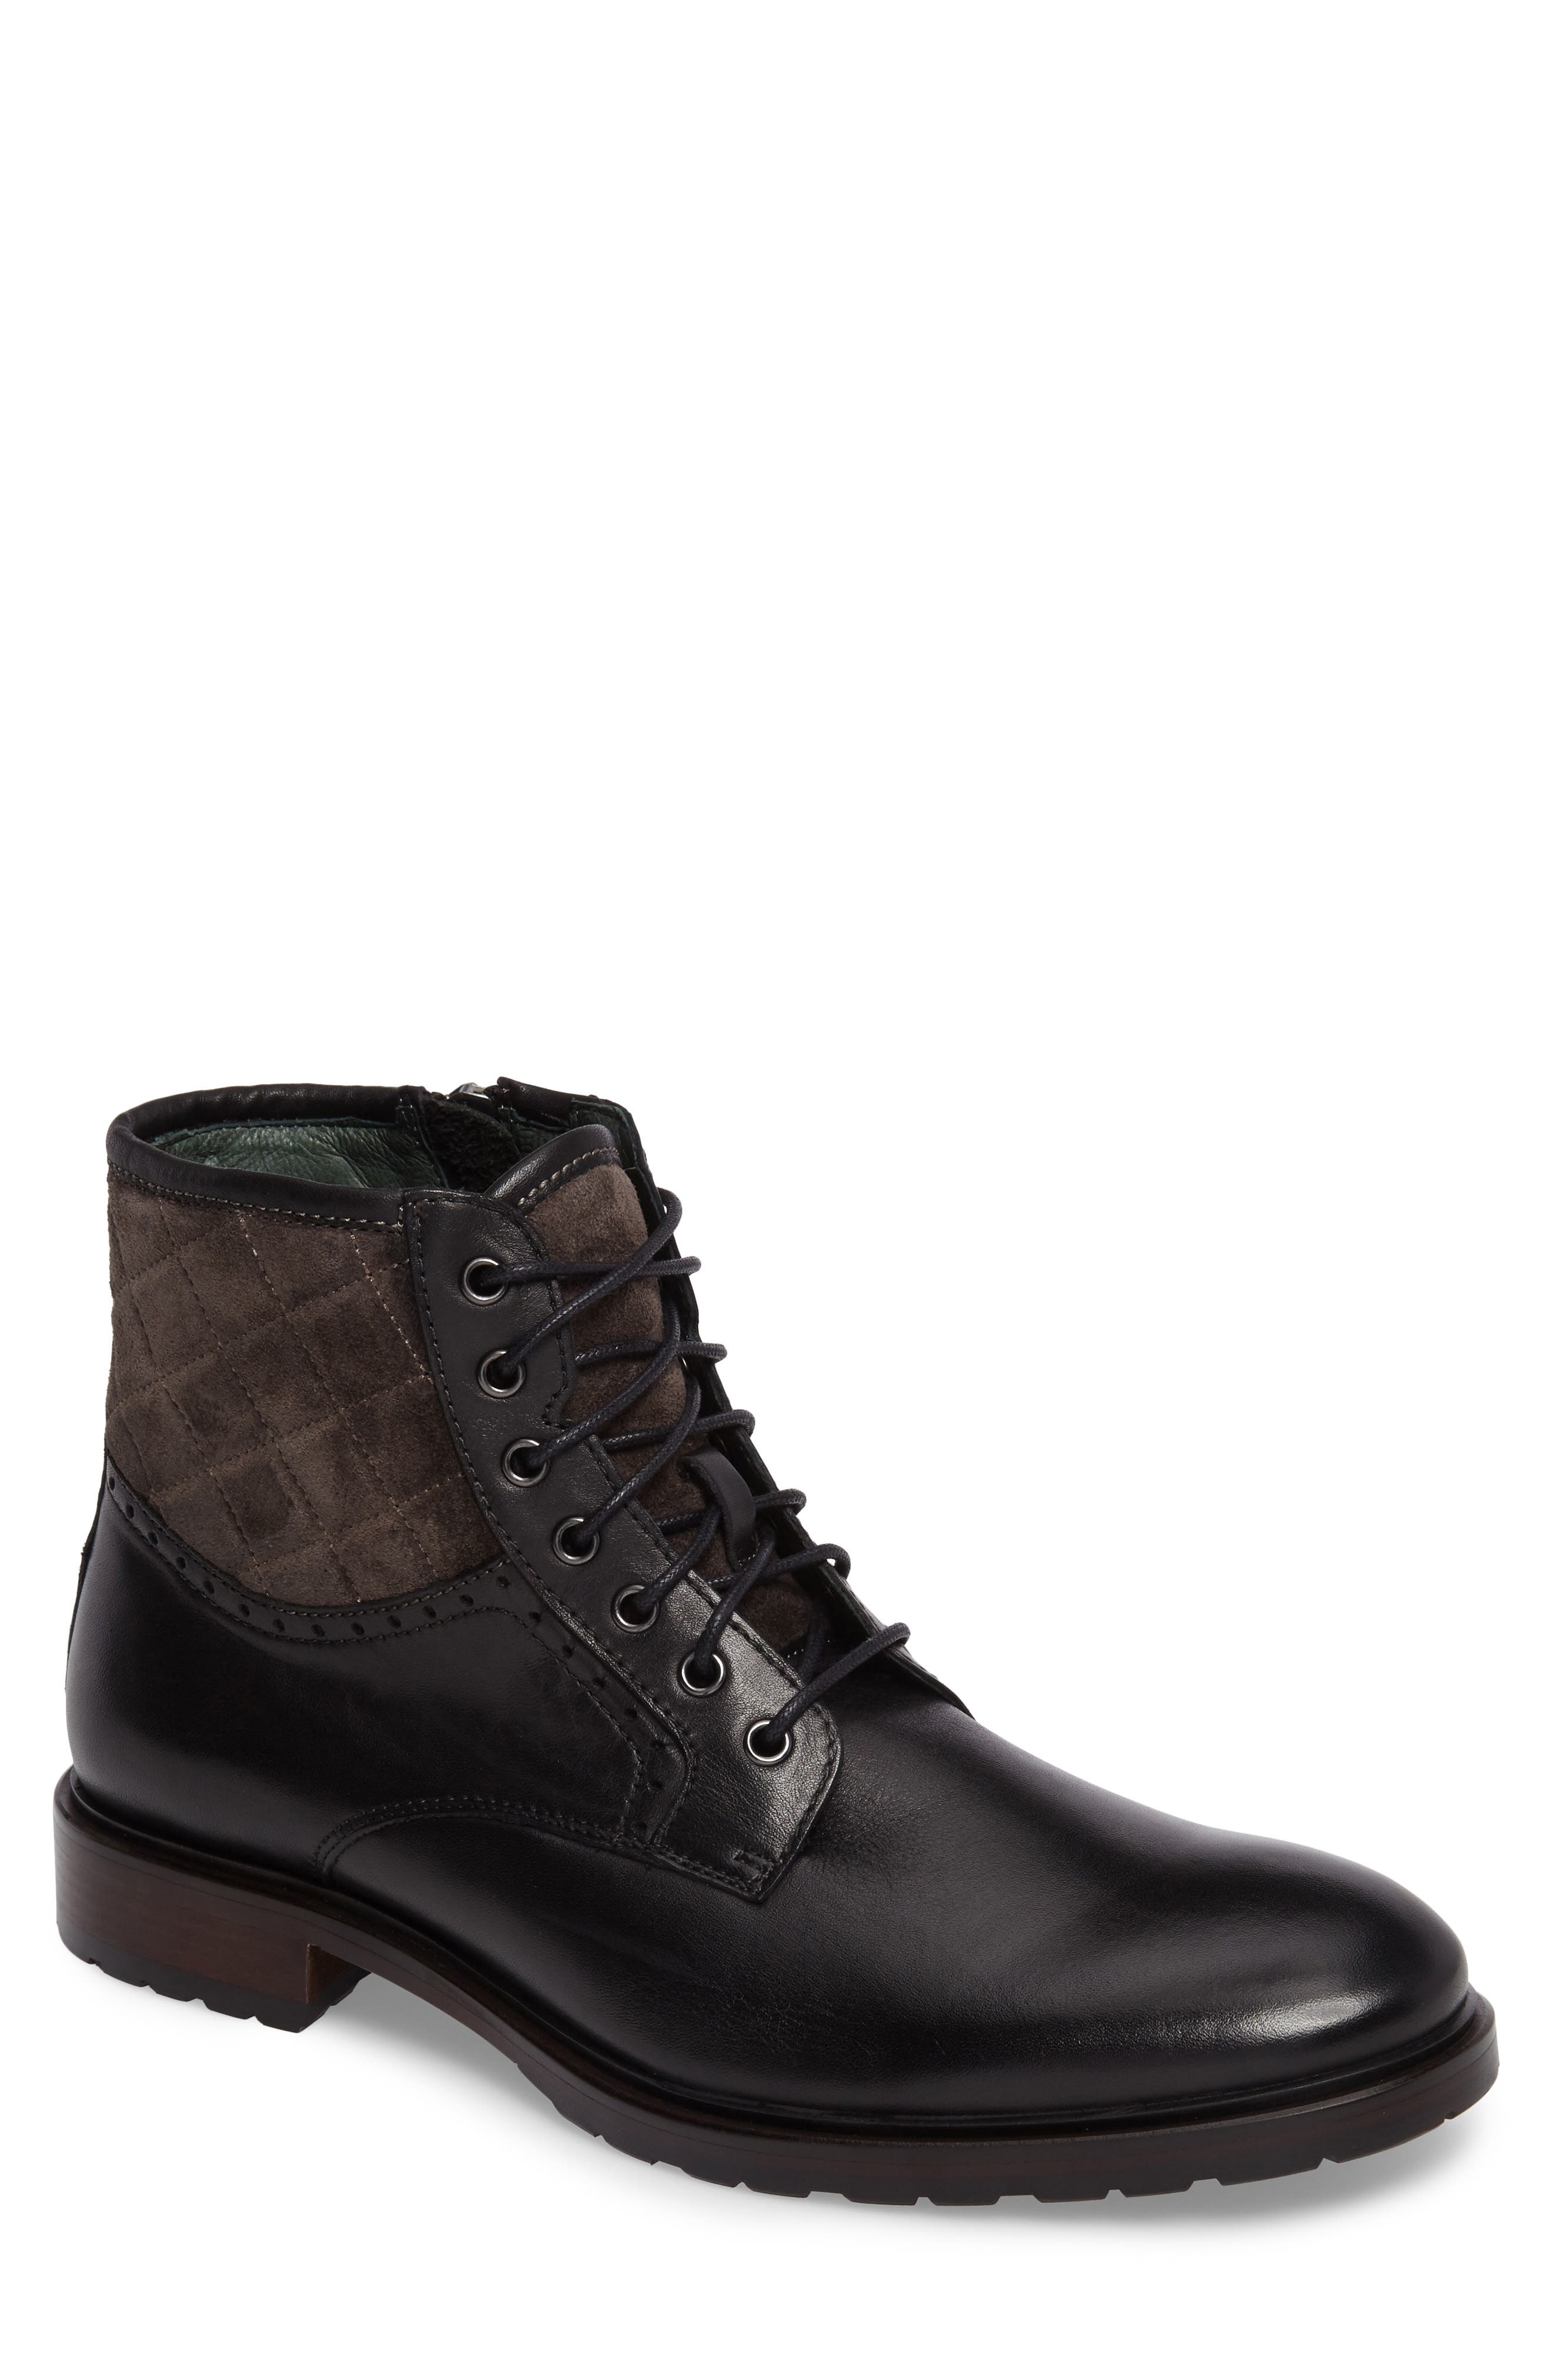 Myles Plain Toe Boot,                         Main,                         color,